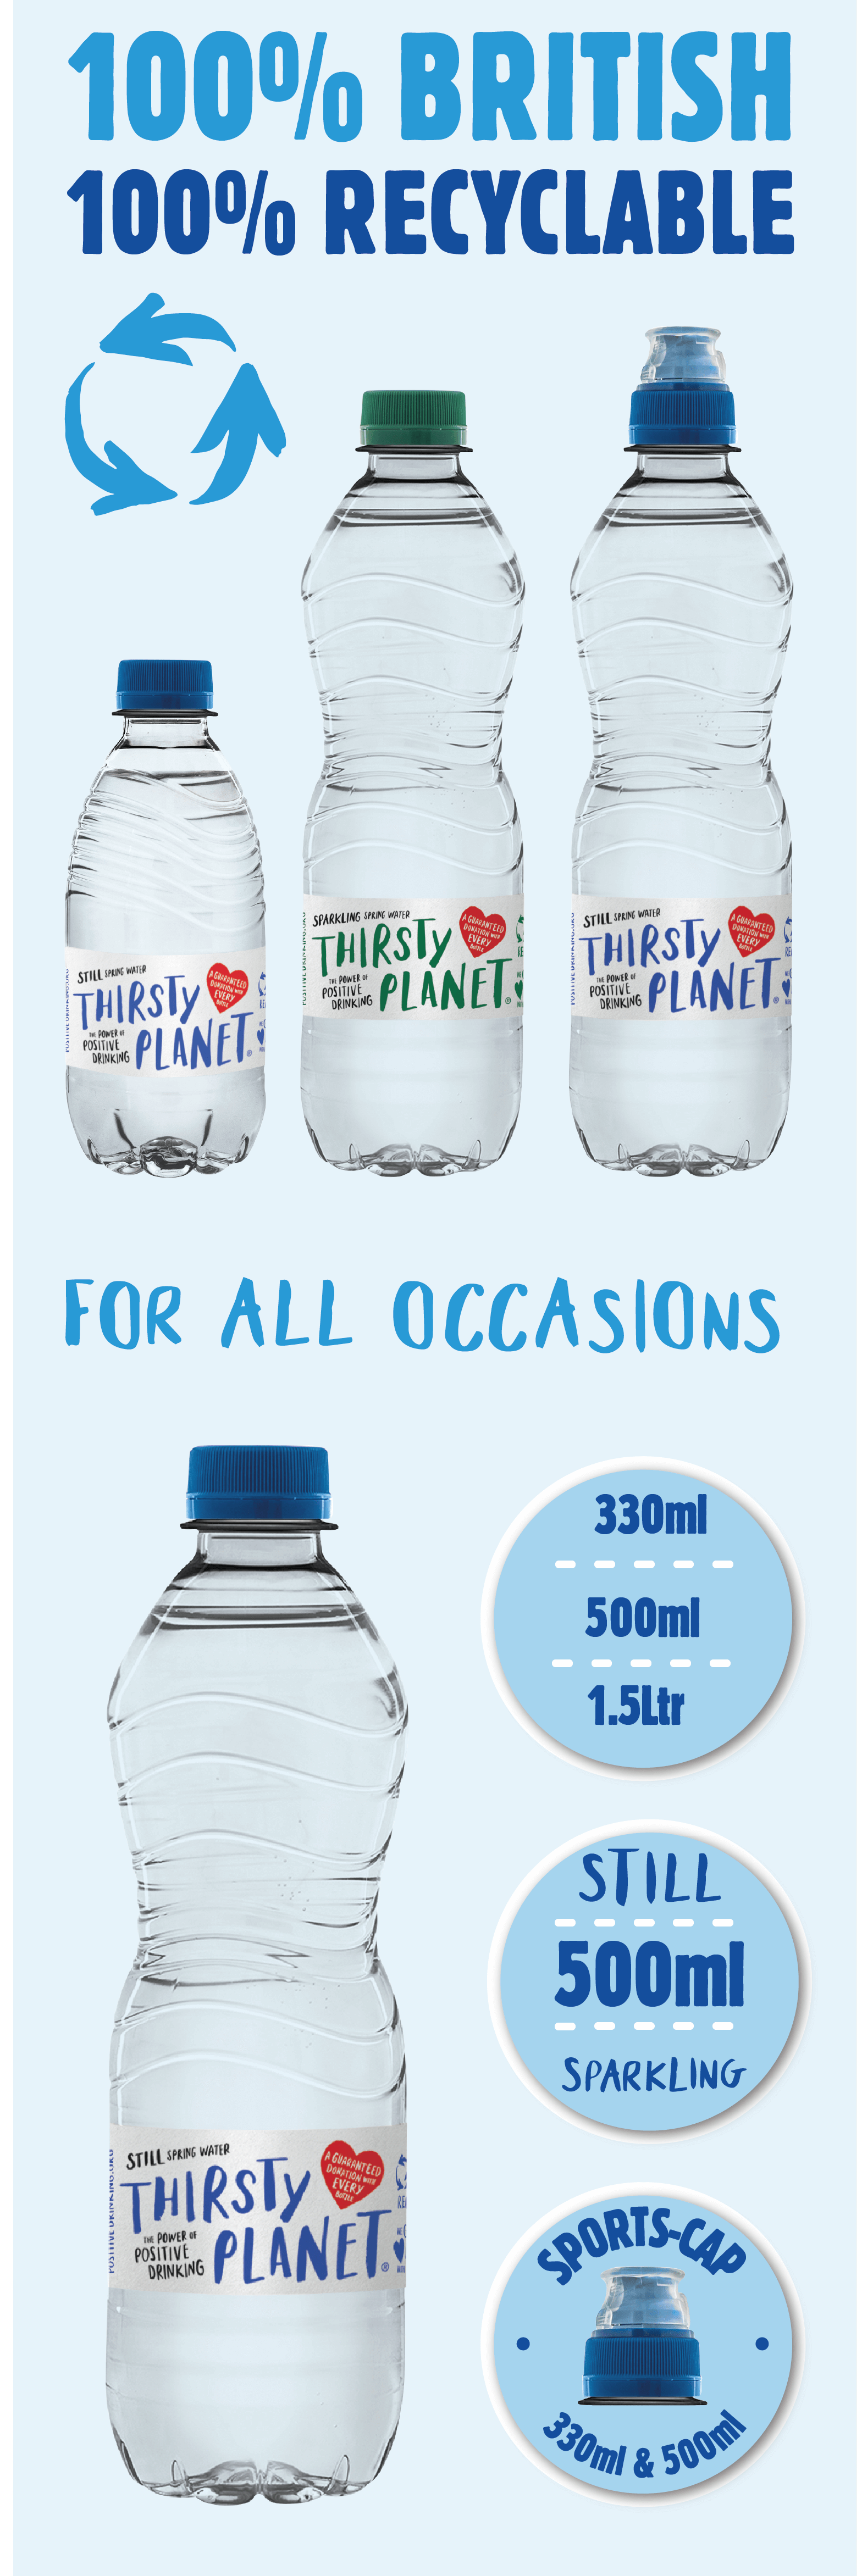 100% British. 100% Recyclable. For all occasions. 330ml, 500ml, 1.5Ltr. 500ml still / sparkling. Sports-Cap 330ml & 500ml.